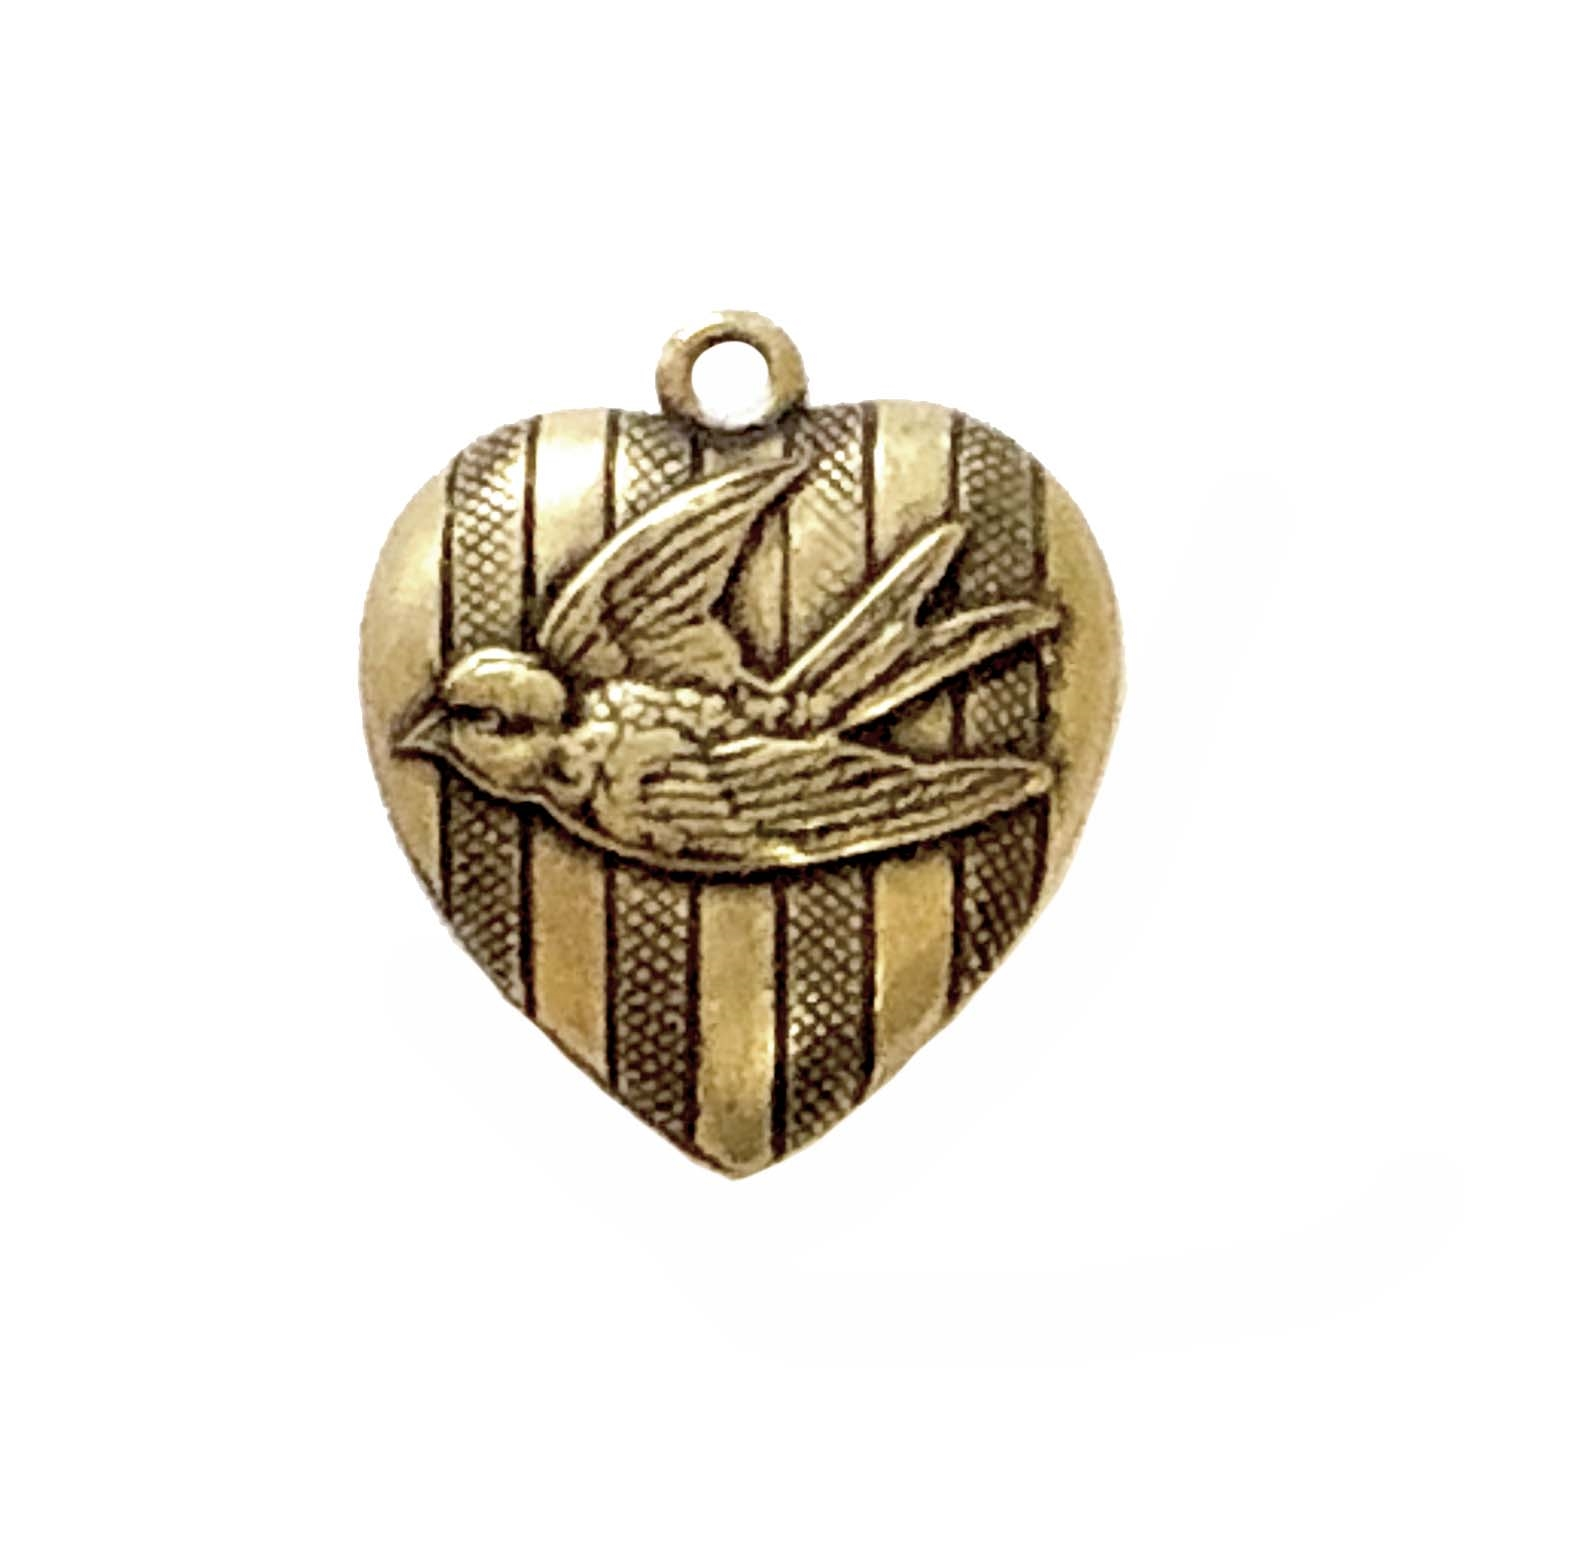 bird heart charms, bird charm, brass stamping, brass ox, nickel free, US made, 24mm, one sided, bird, pendent, locket, charm, heart, heart charm, jewelry findings, hollow back, B'sue Boutiques, bird heart, heart bird,01145